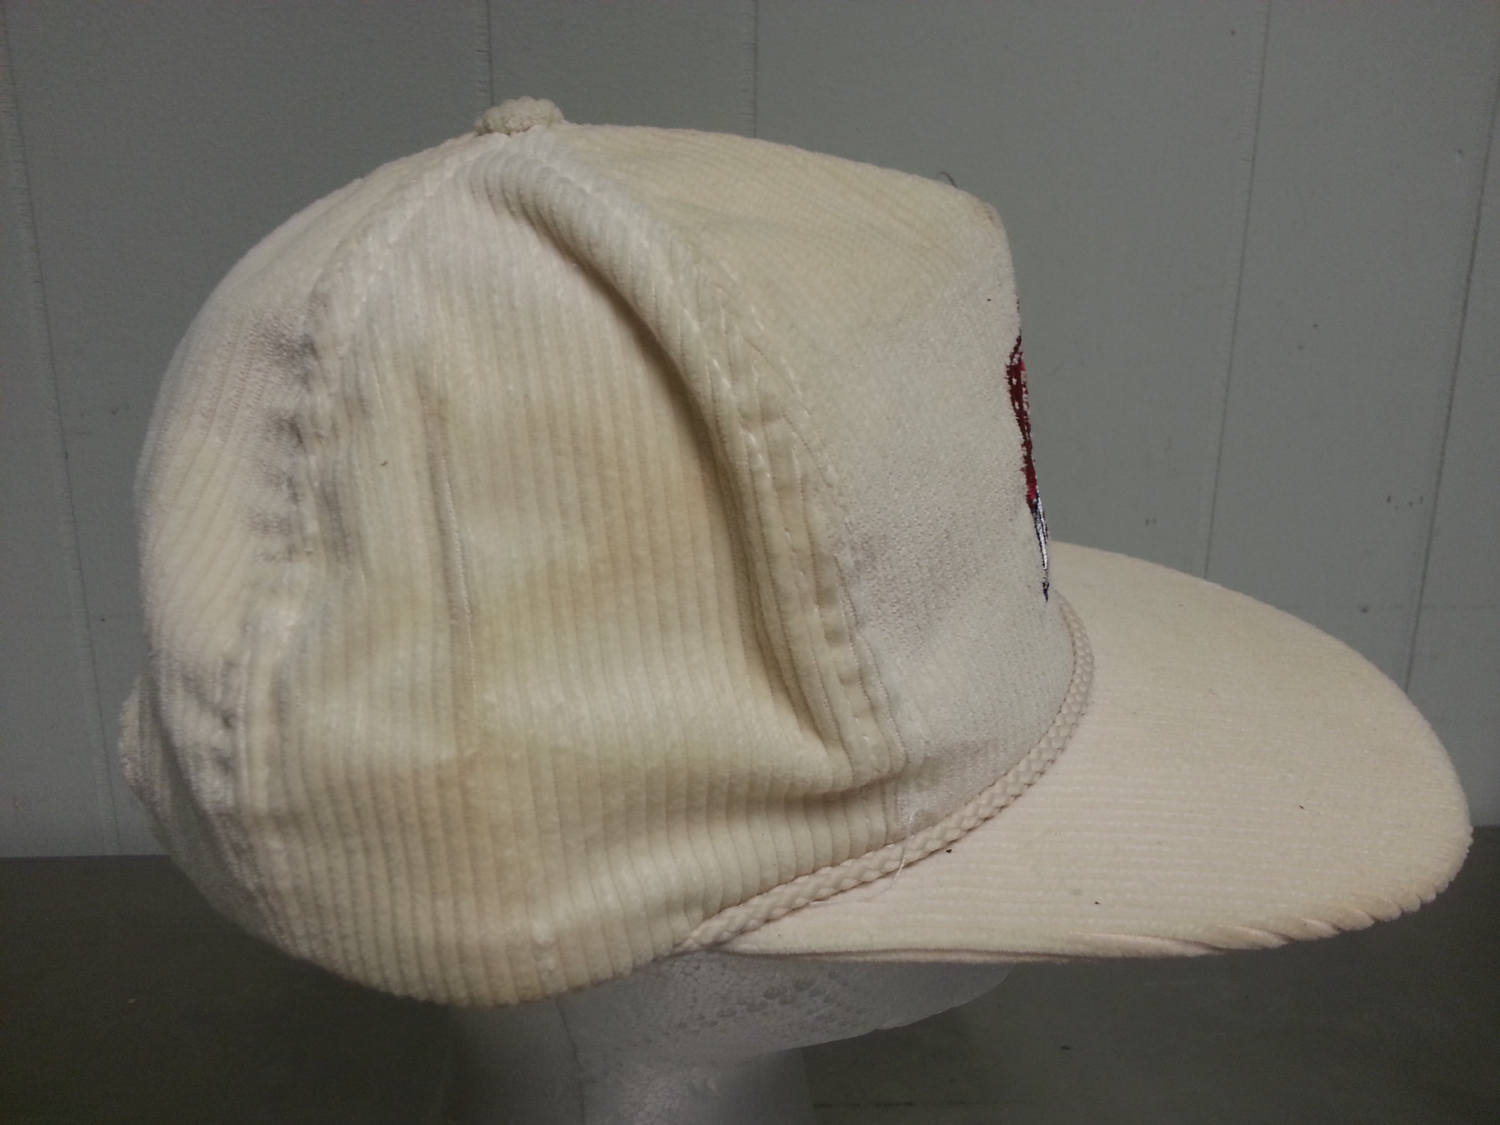 Vintage 80 s White Corduroy Superbowl XXI Adjustable Snap Back Dad Hat NFL  Football Made in USA 84e6b820a